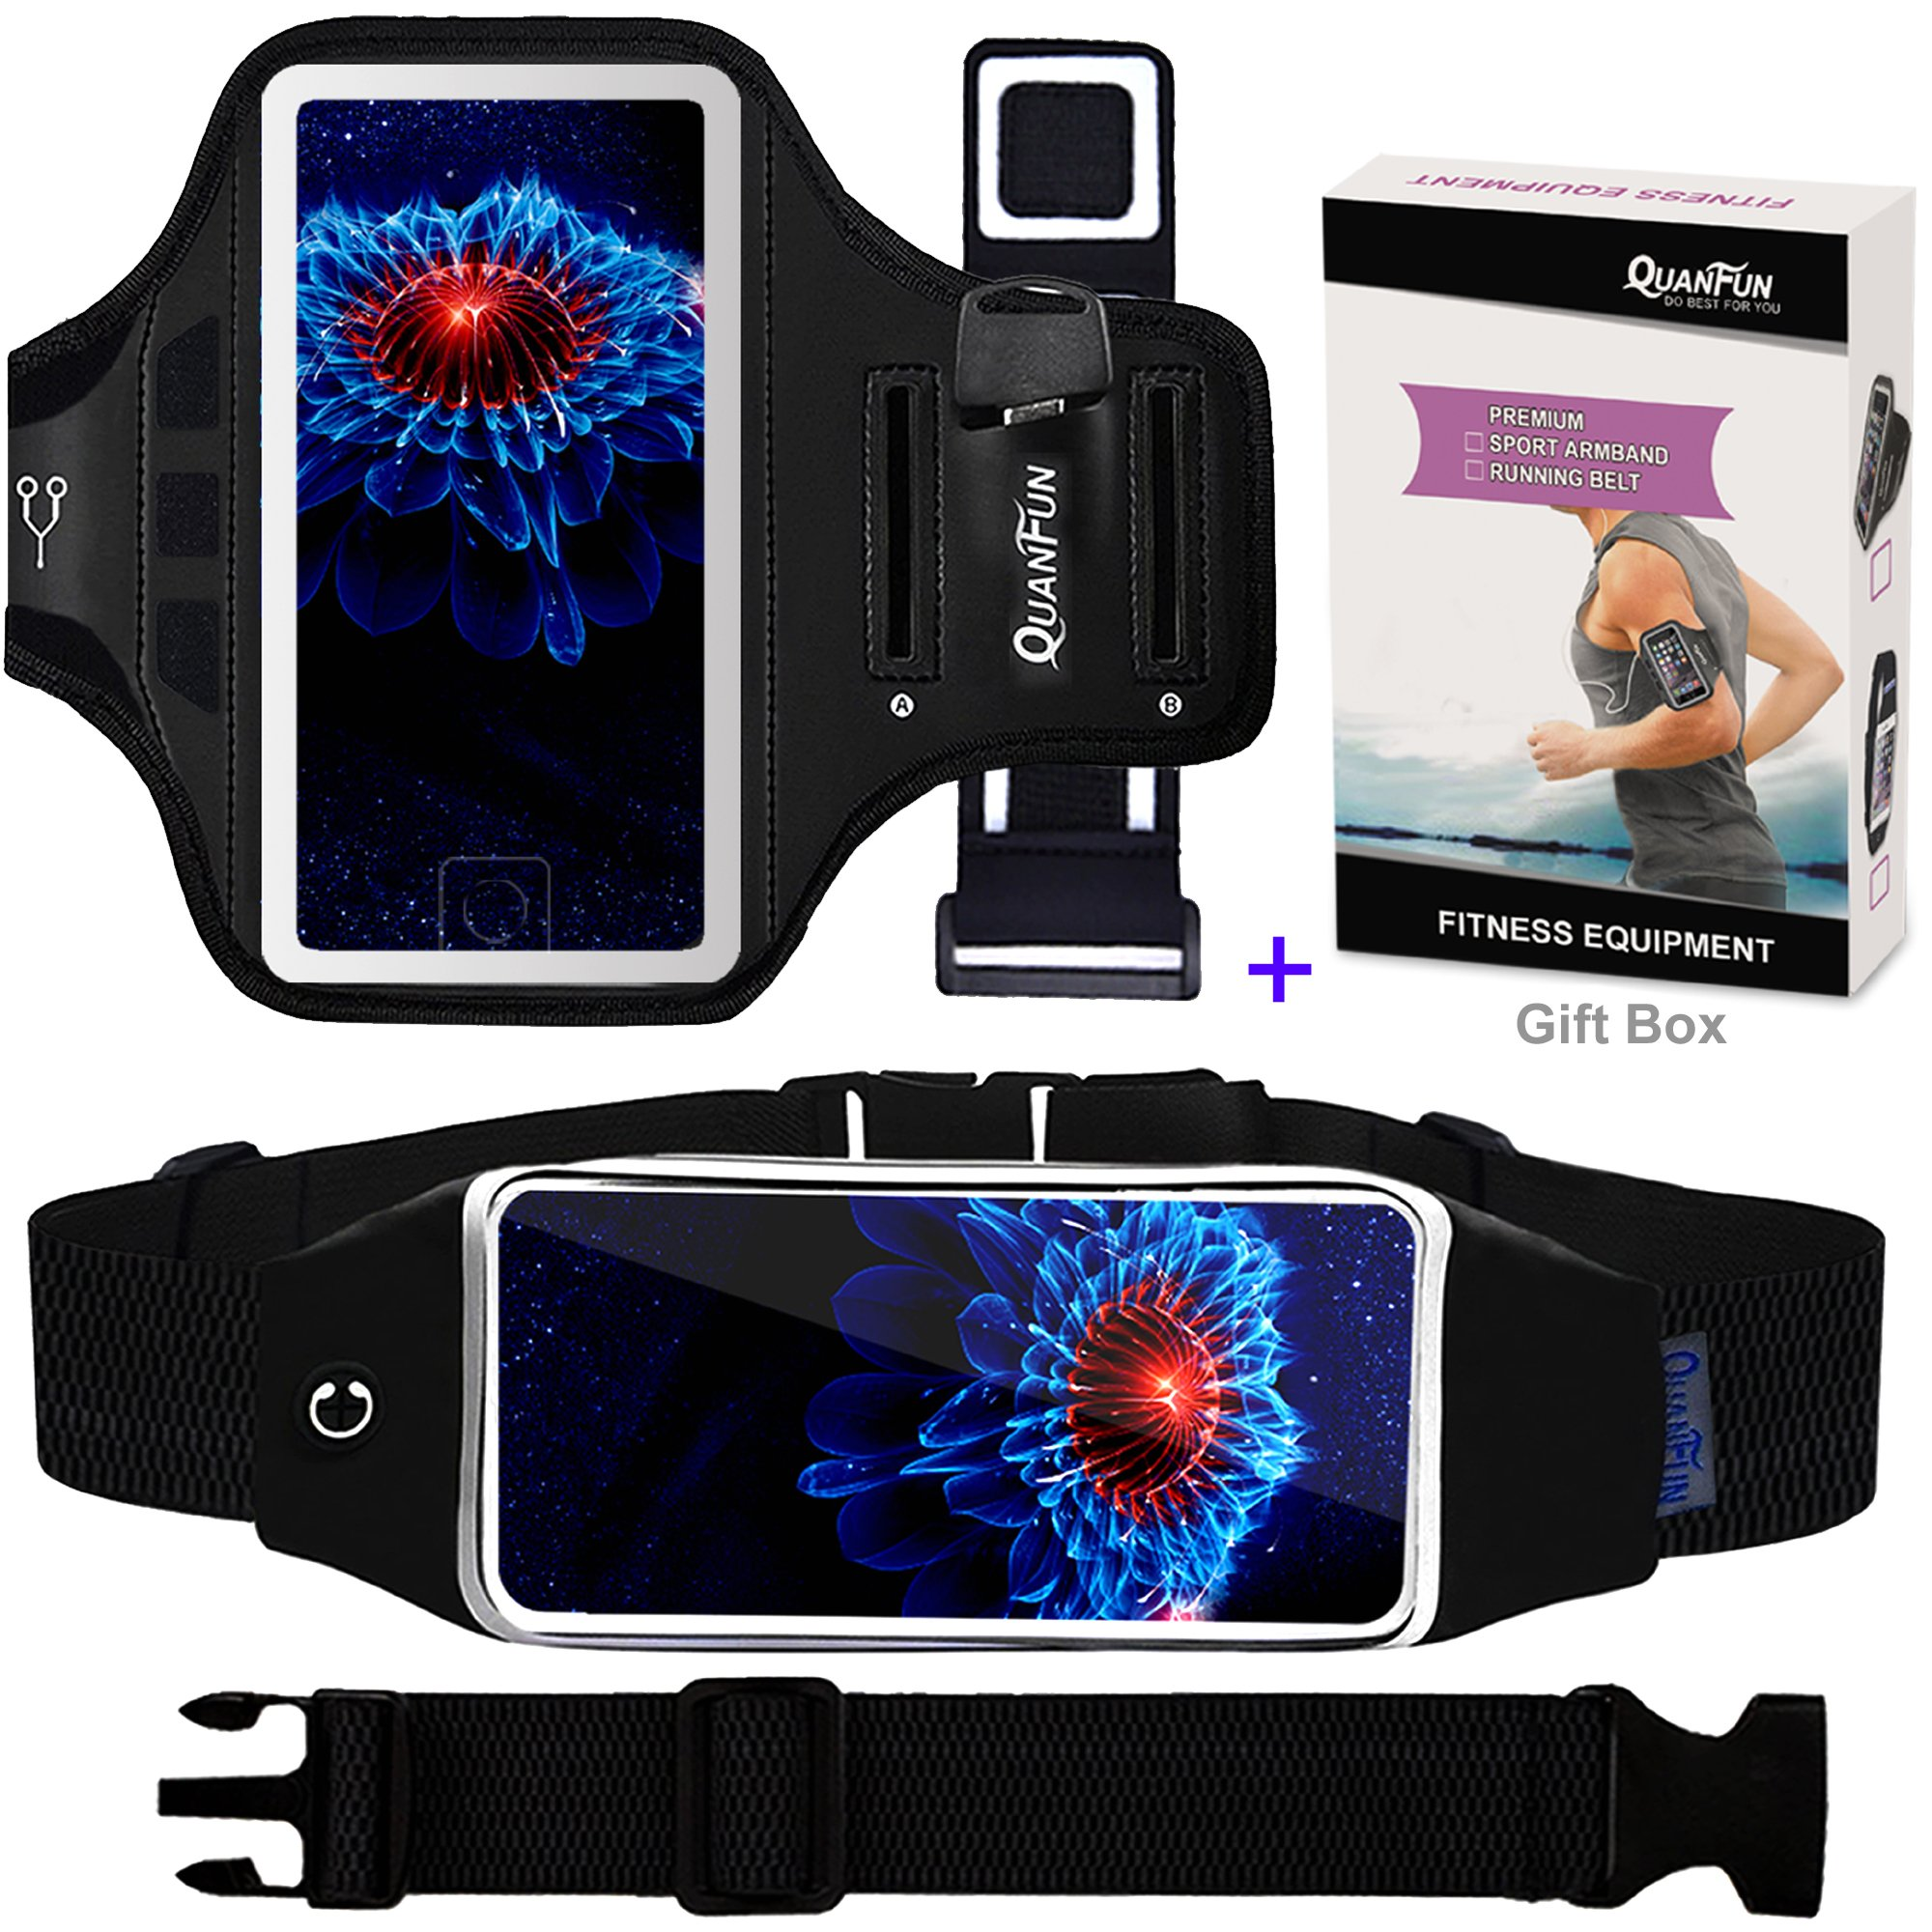 QUANFUN Compatible iPhone 8 Plus 7 Plus 6s/6 Plus Cell Phone Armband + Running Belt, Waist Pack Workout Wristband Sport Arm Band Strap Key Holder Compatible Galaxy s8 s7 s6 Edge, Up to 6.2'', Black